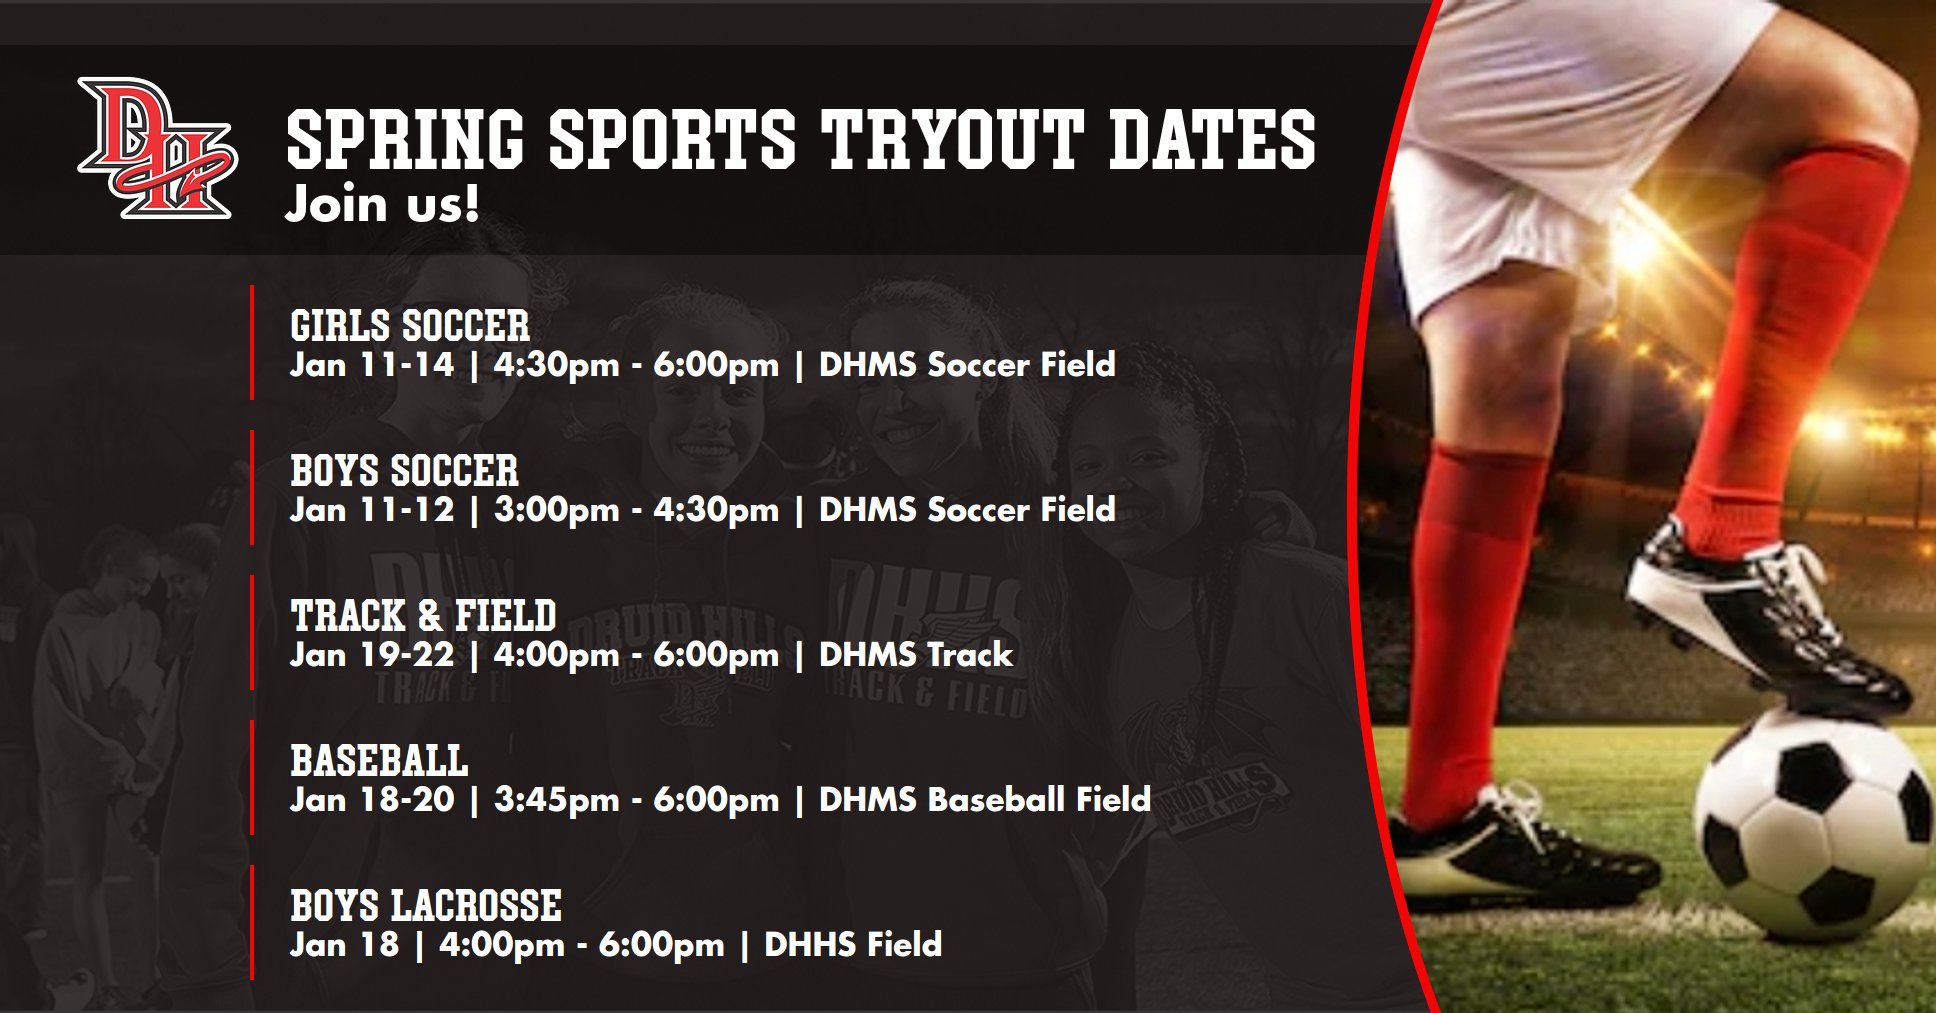 SPRING SPORTS TRYOUT DATES